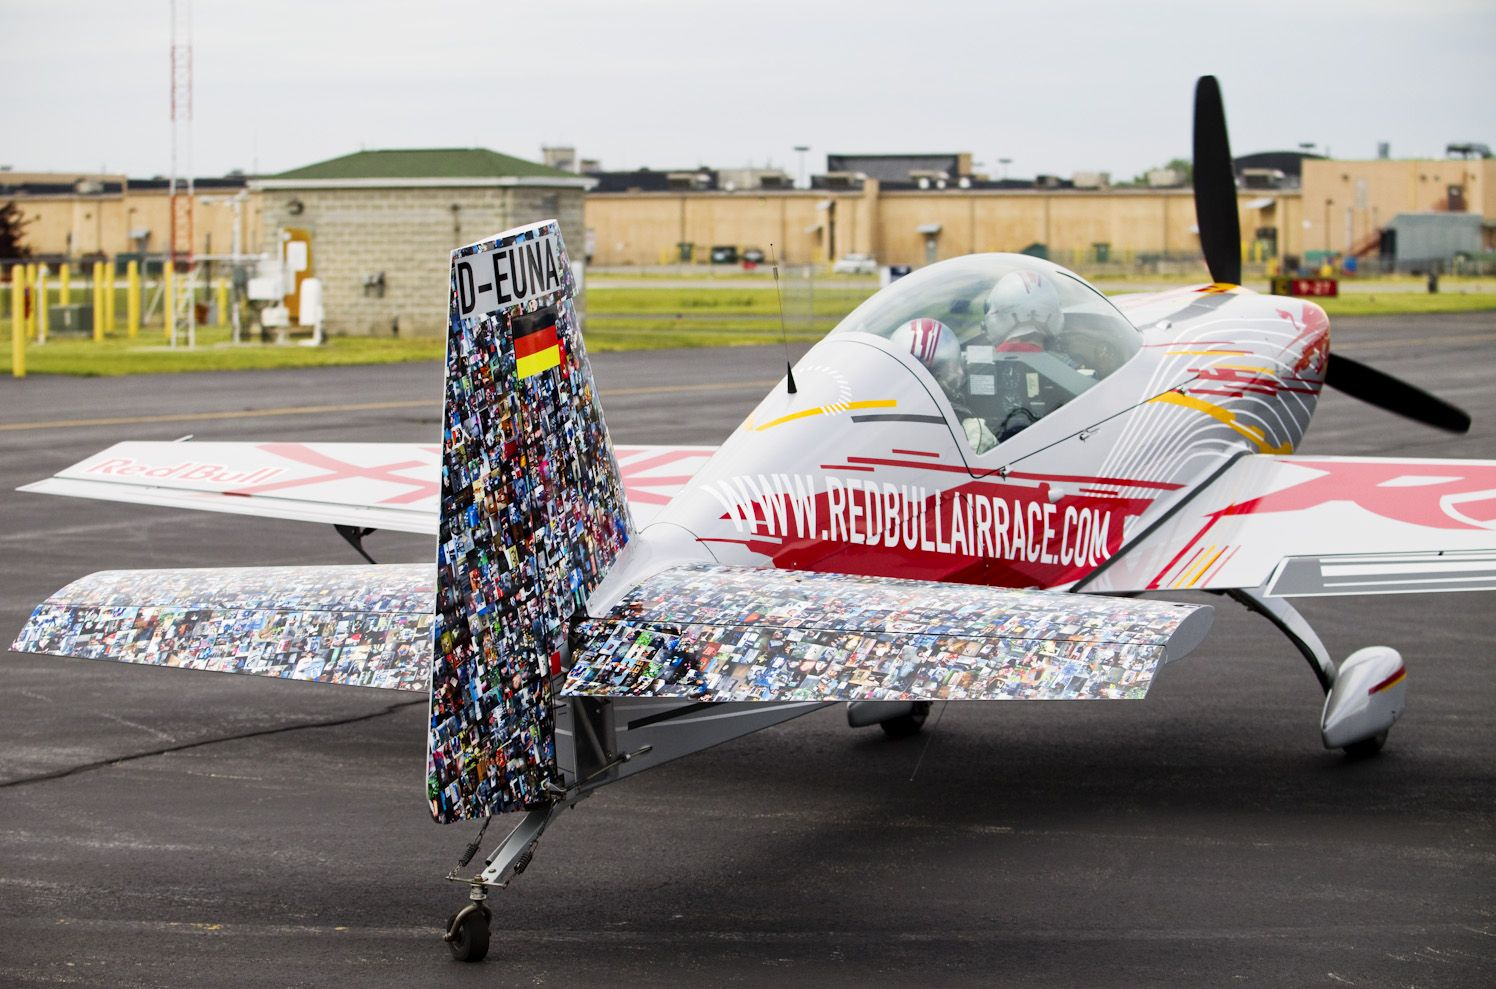 9 X5 Red Bull Air Race Mosaic Plane Wrap Using Adhesive